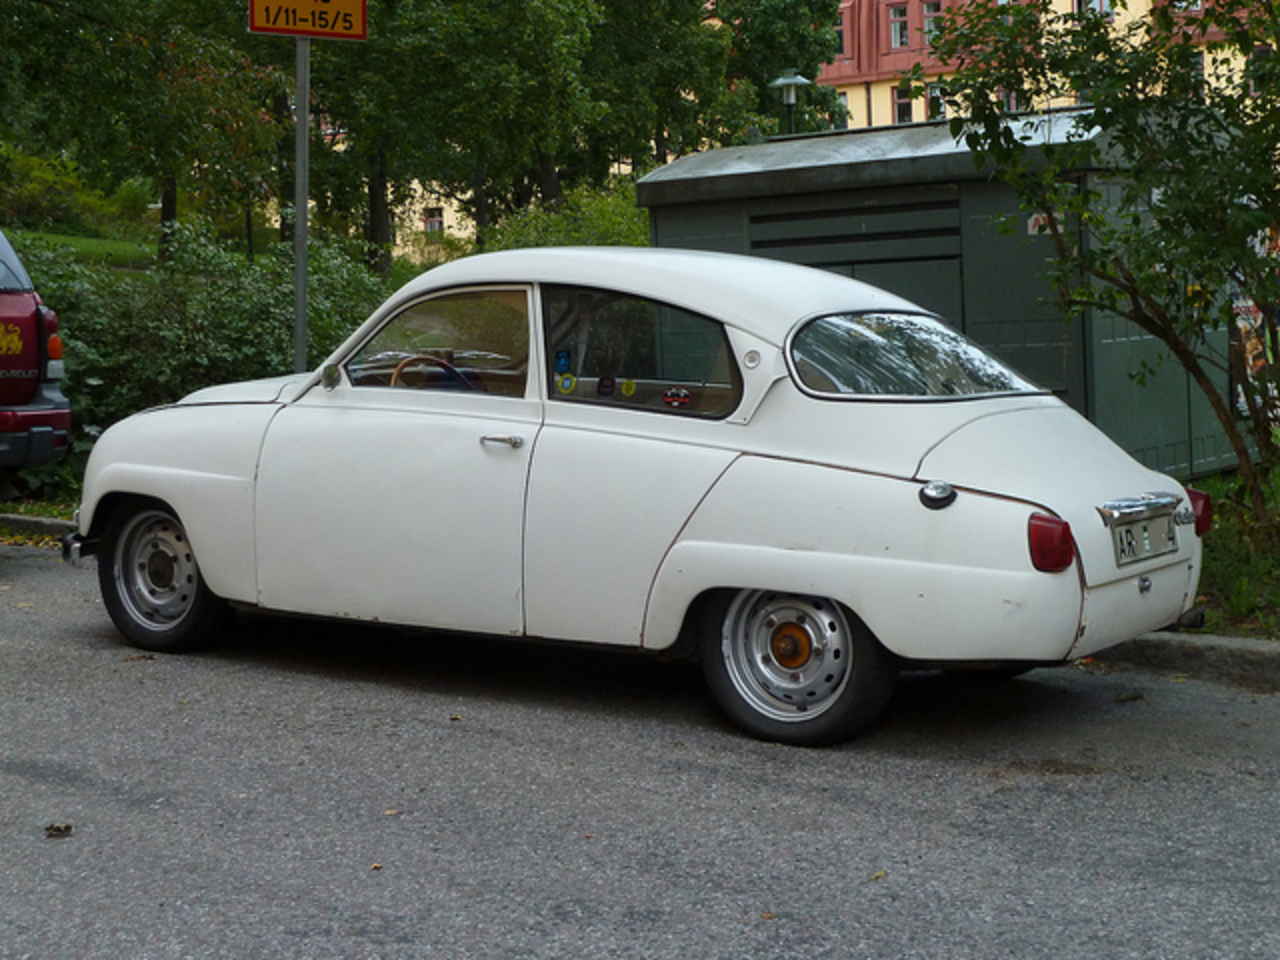 SAAB 96 DE LUXE 1961 2 | Flickr - Photo Sharing!